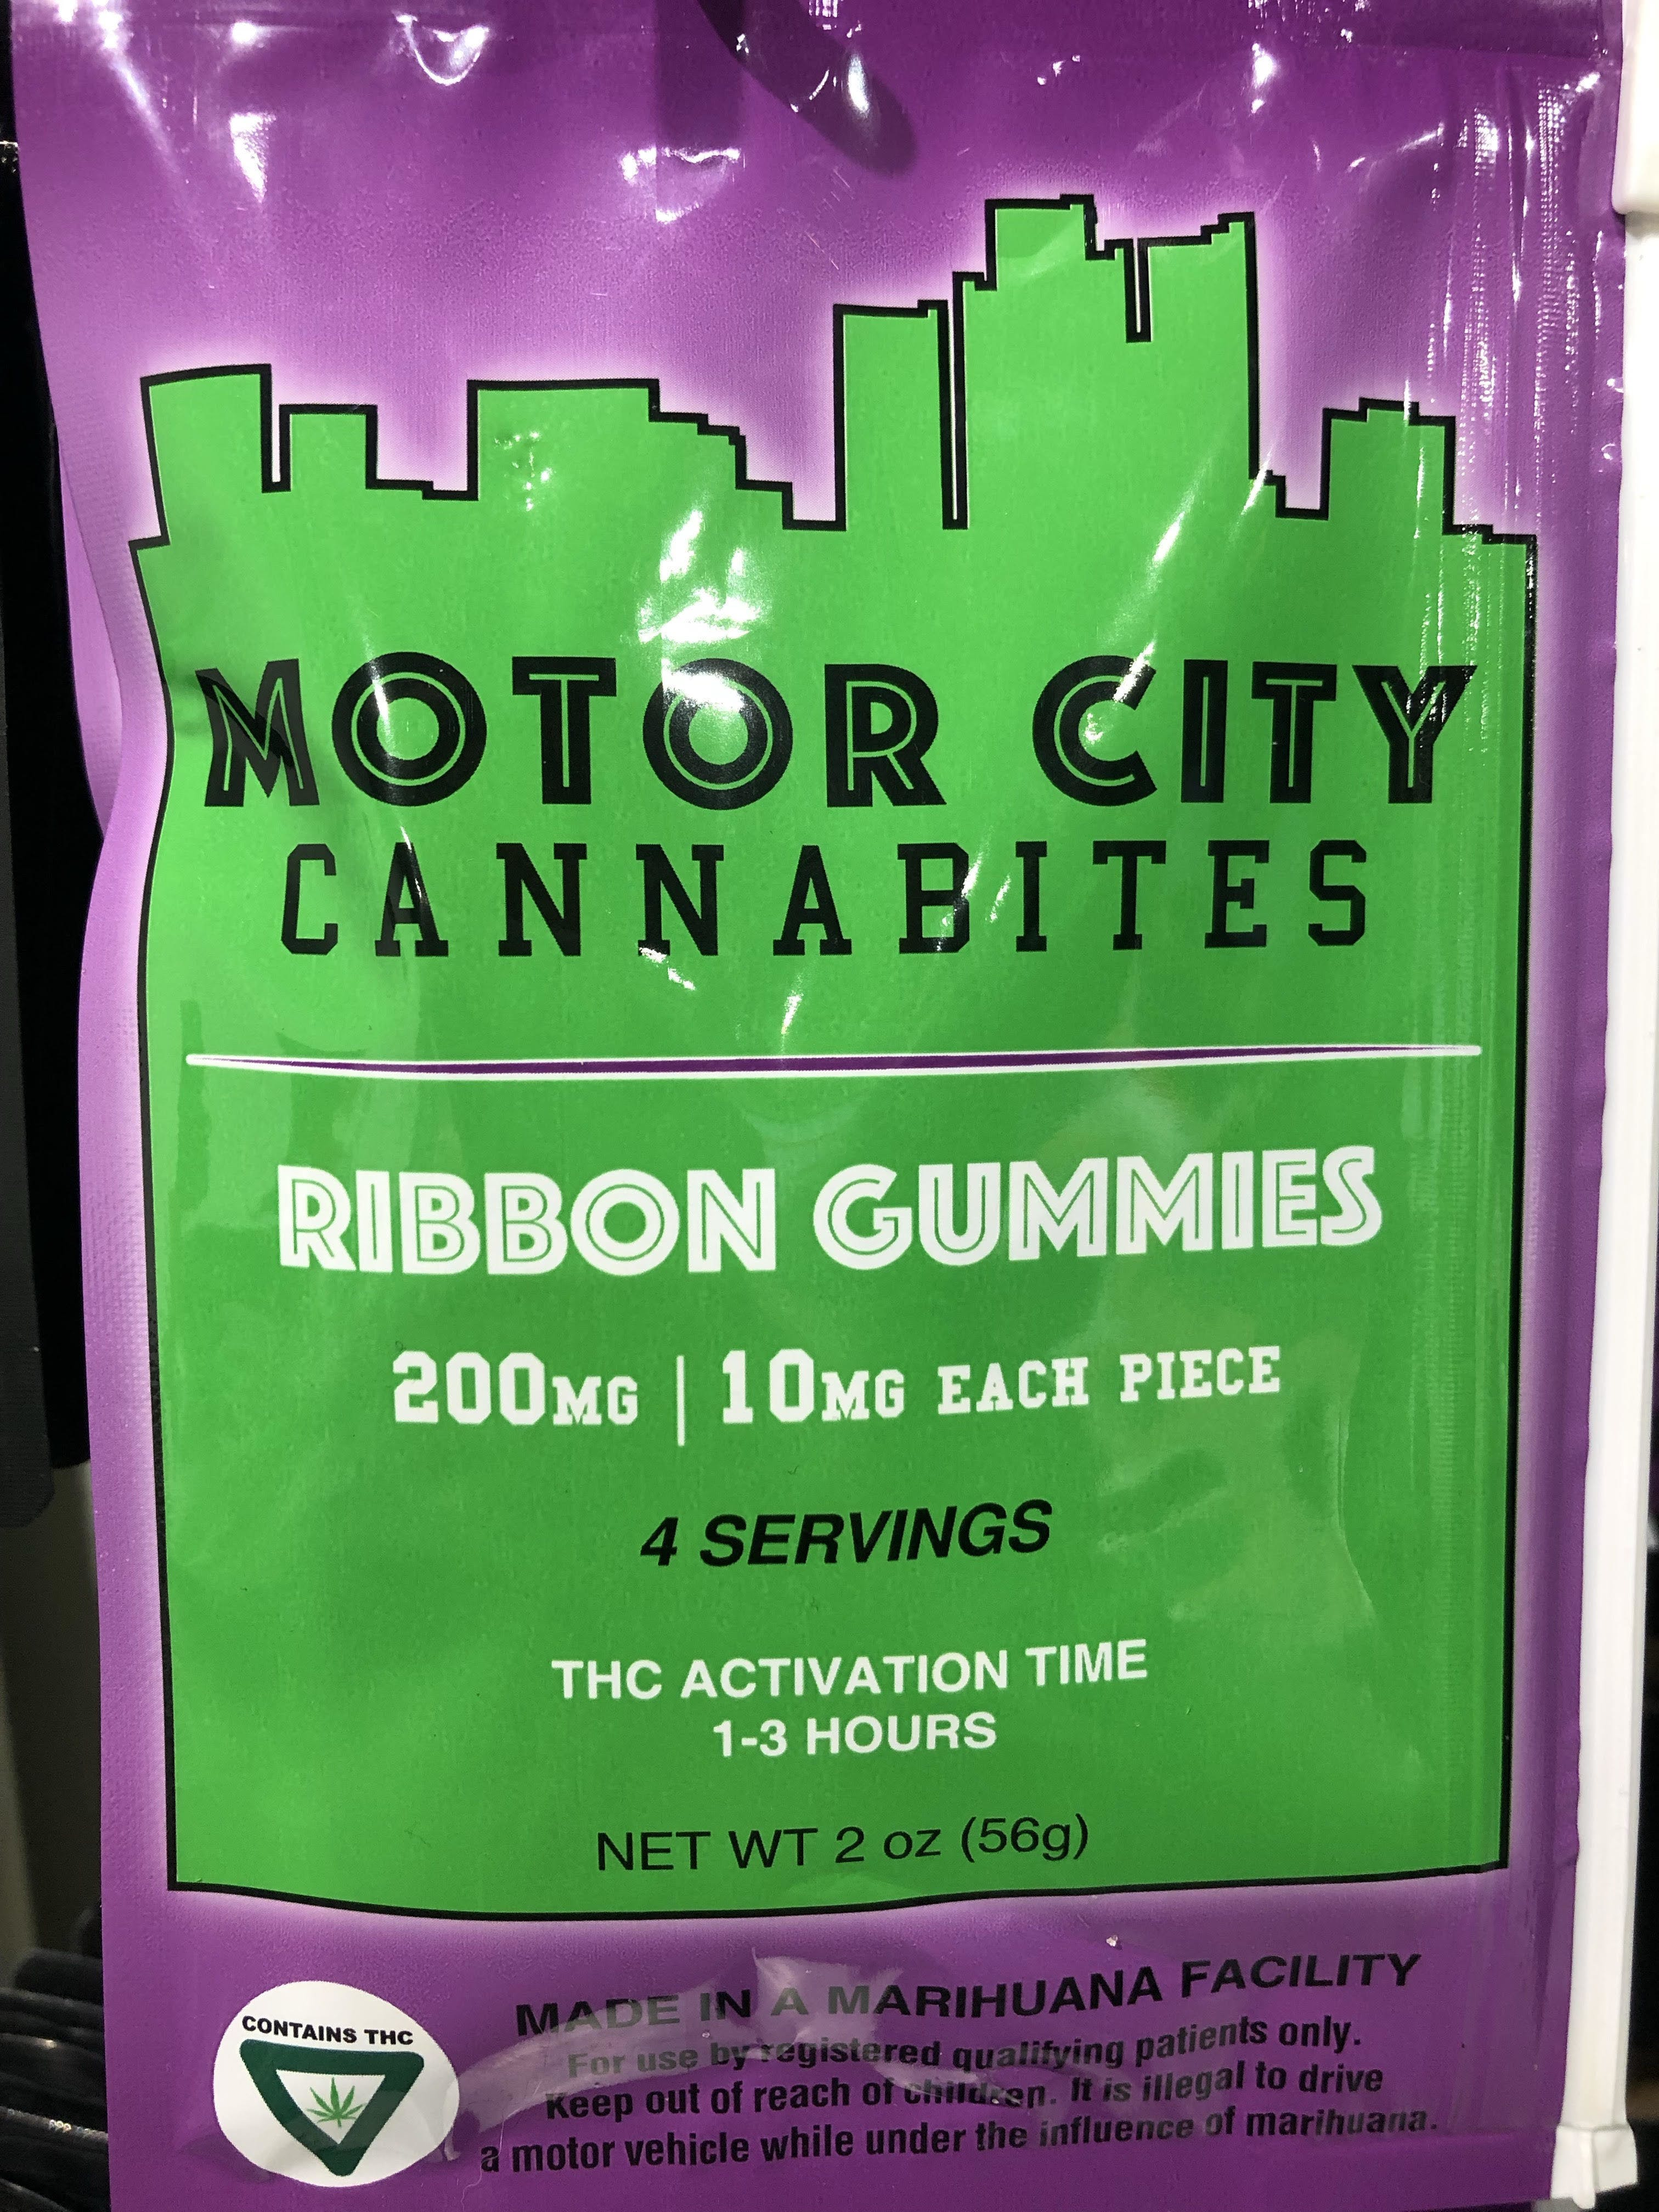 marijuana-dispensaries-the-green-mile-in-detroit-motor-city-cannabites-200mg